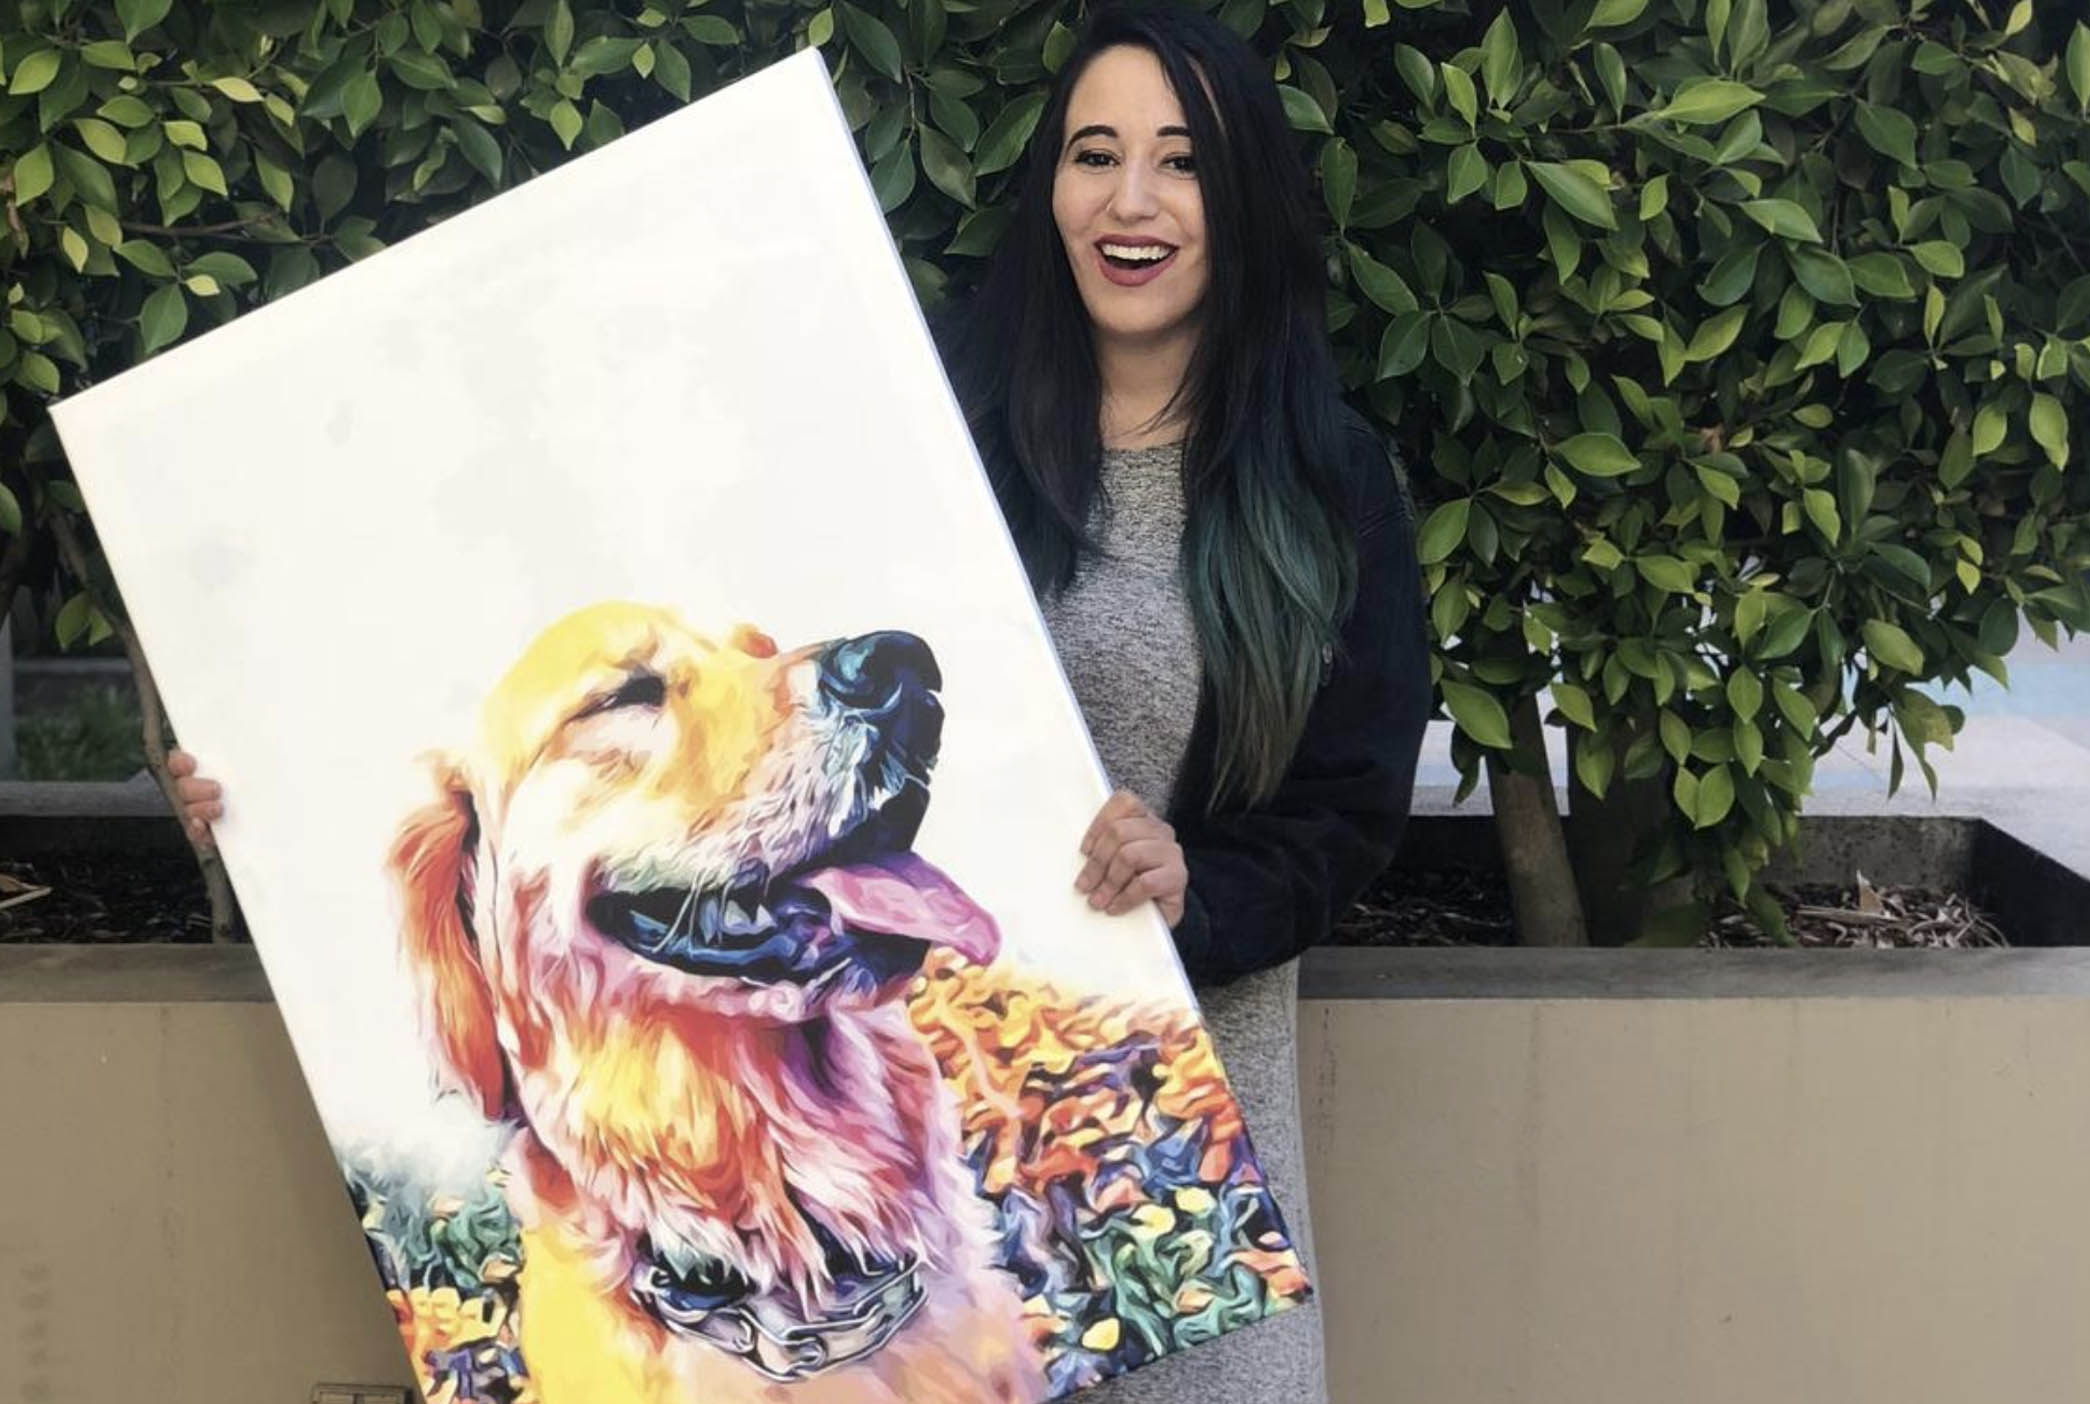 Aided by our fun-loving instructors, create an original masterpiece of your pet, all while enjoying food and drinks! Hosted by Real Dog Moms of Chicago.